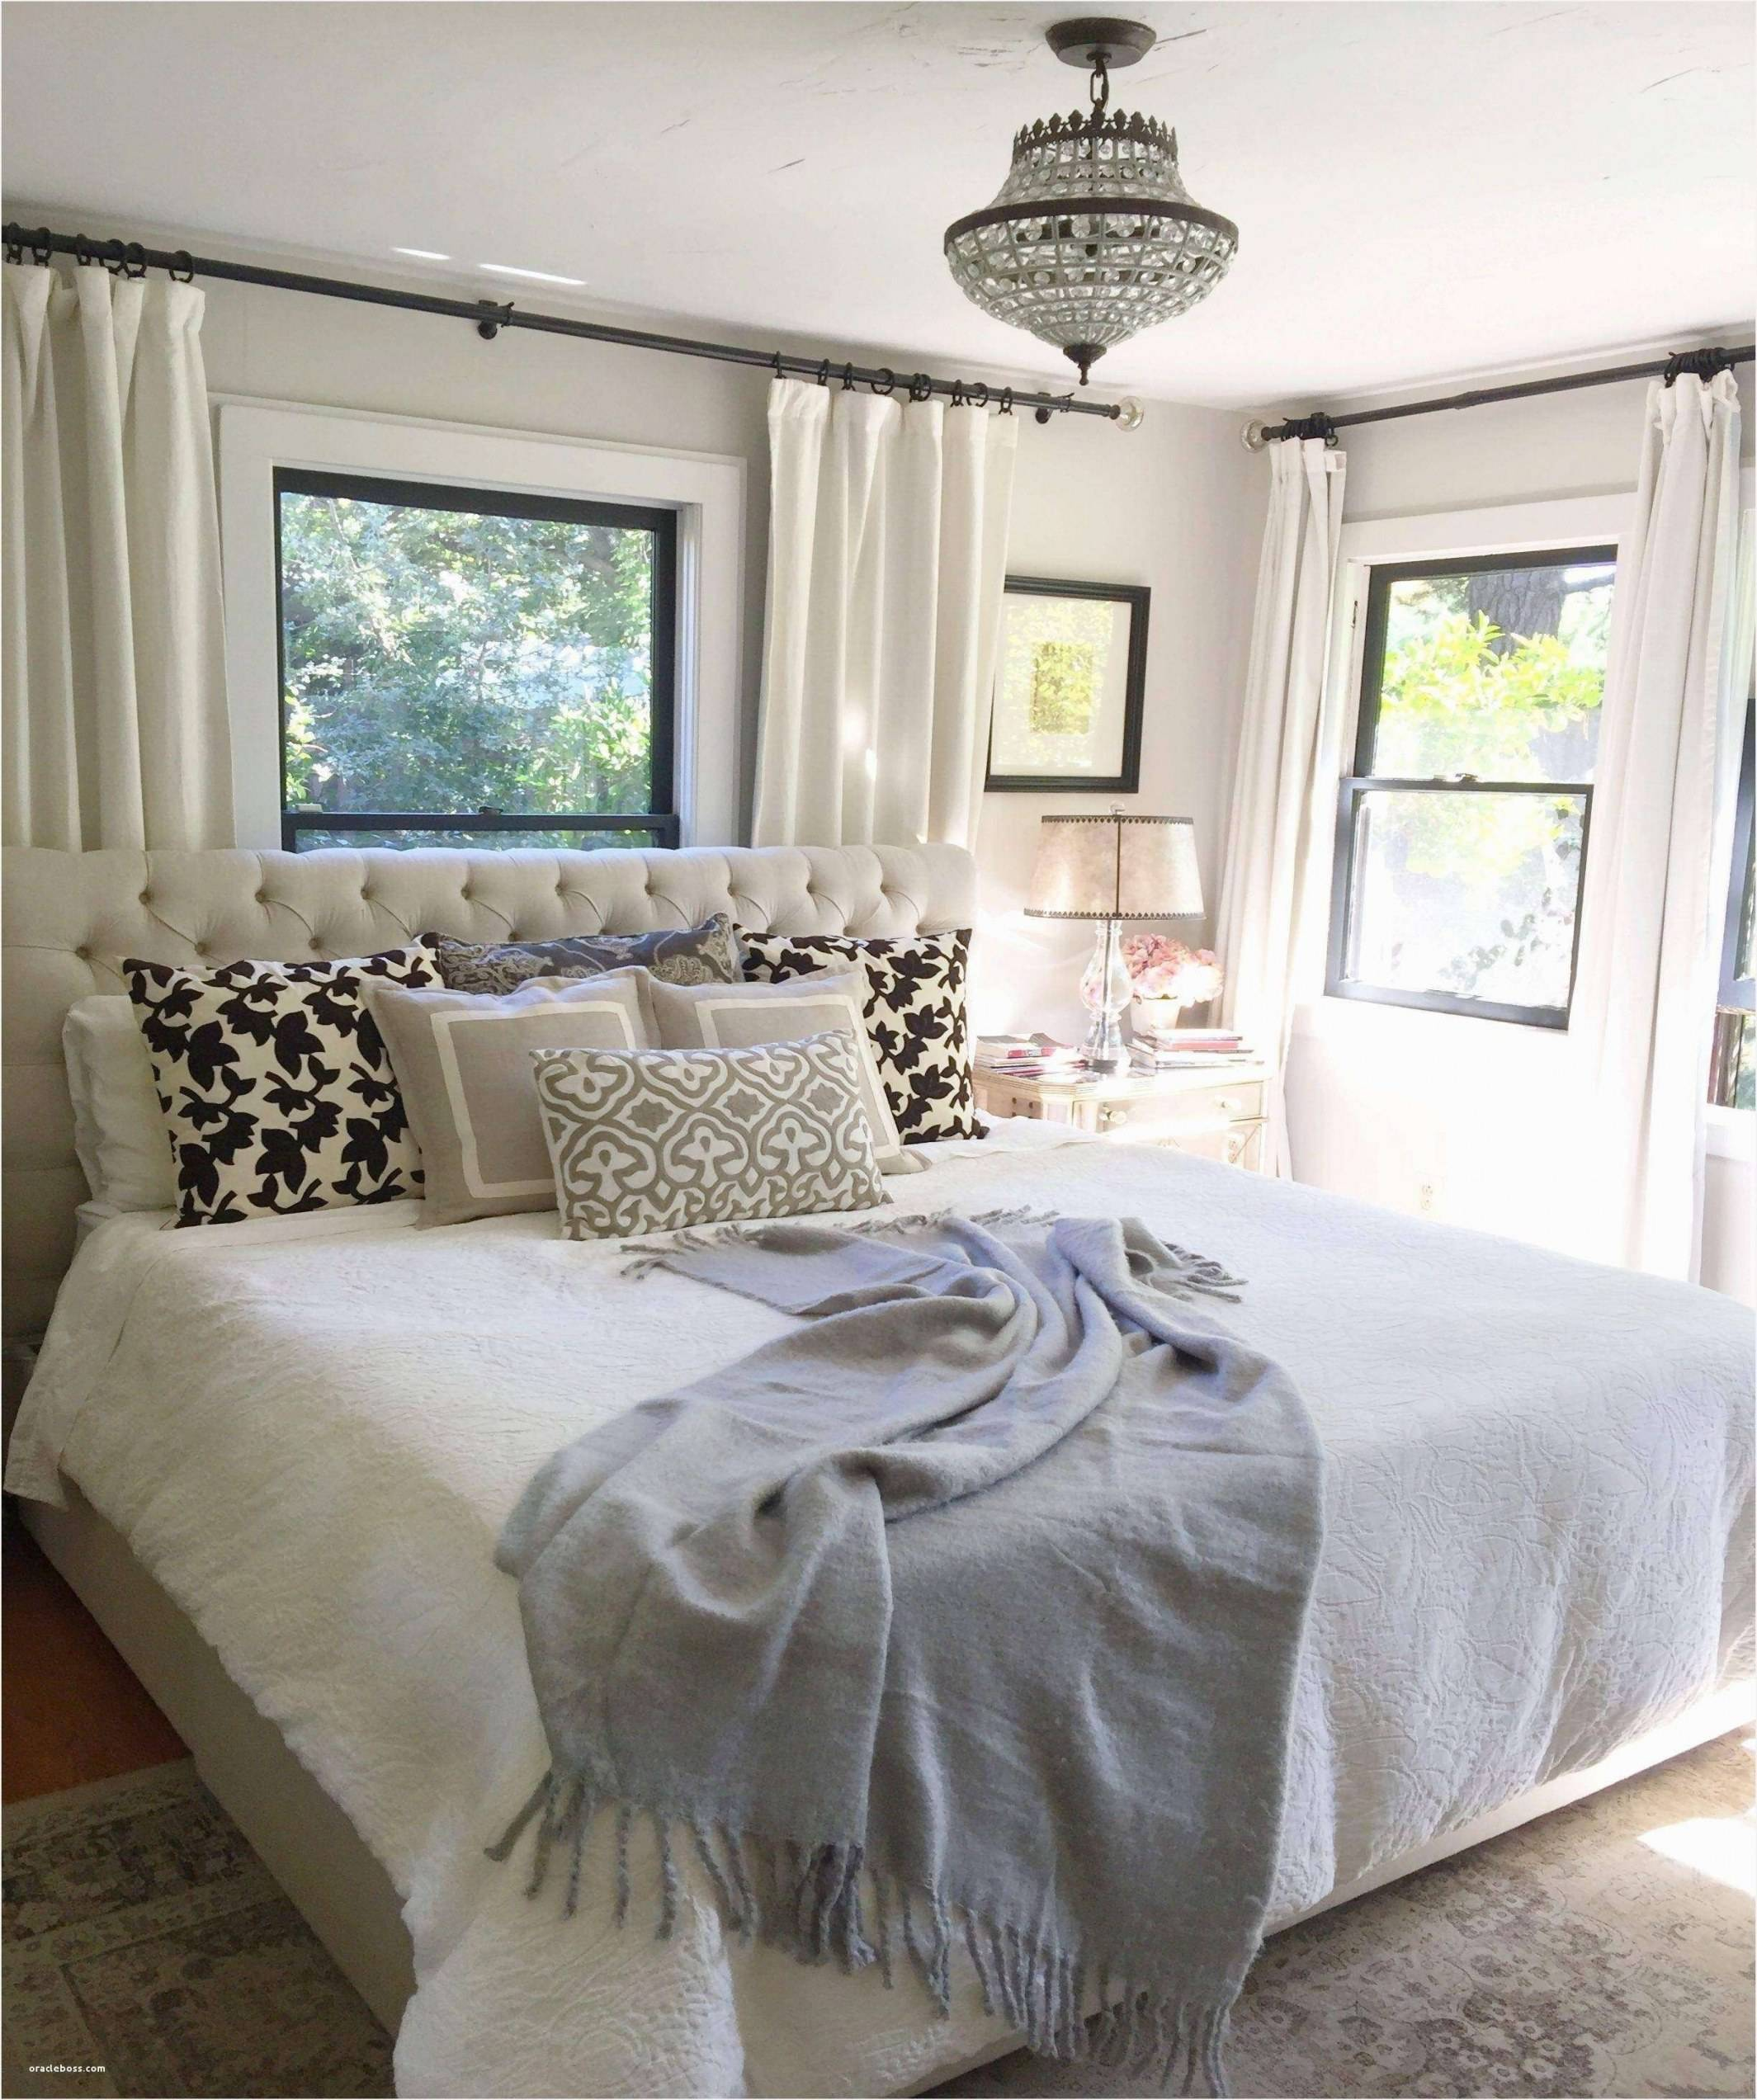 bedroom interior design pictures 43 fresh master bedroom ideas for couples romantic interior of bedroom interior design pictures 1